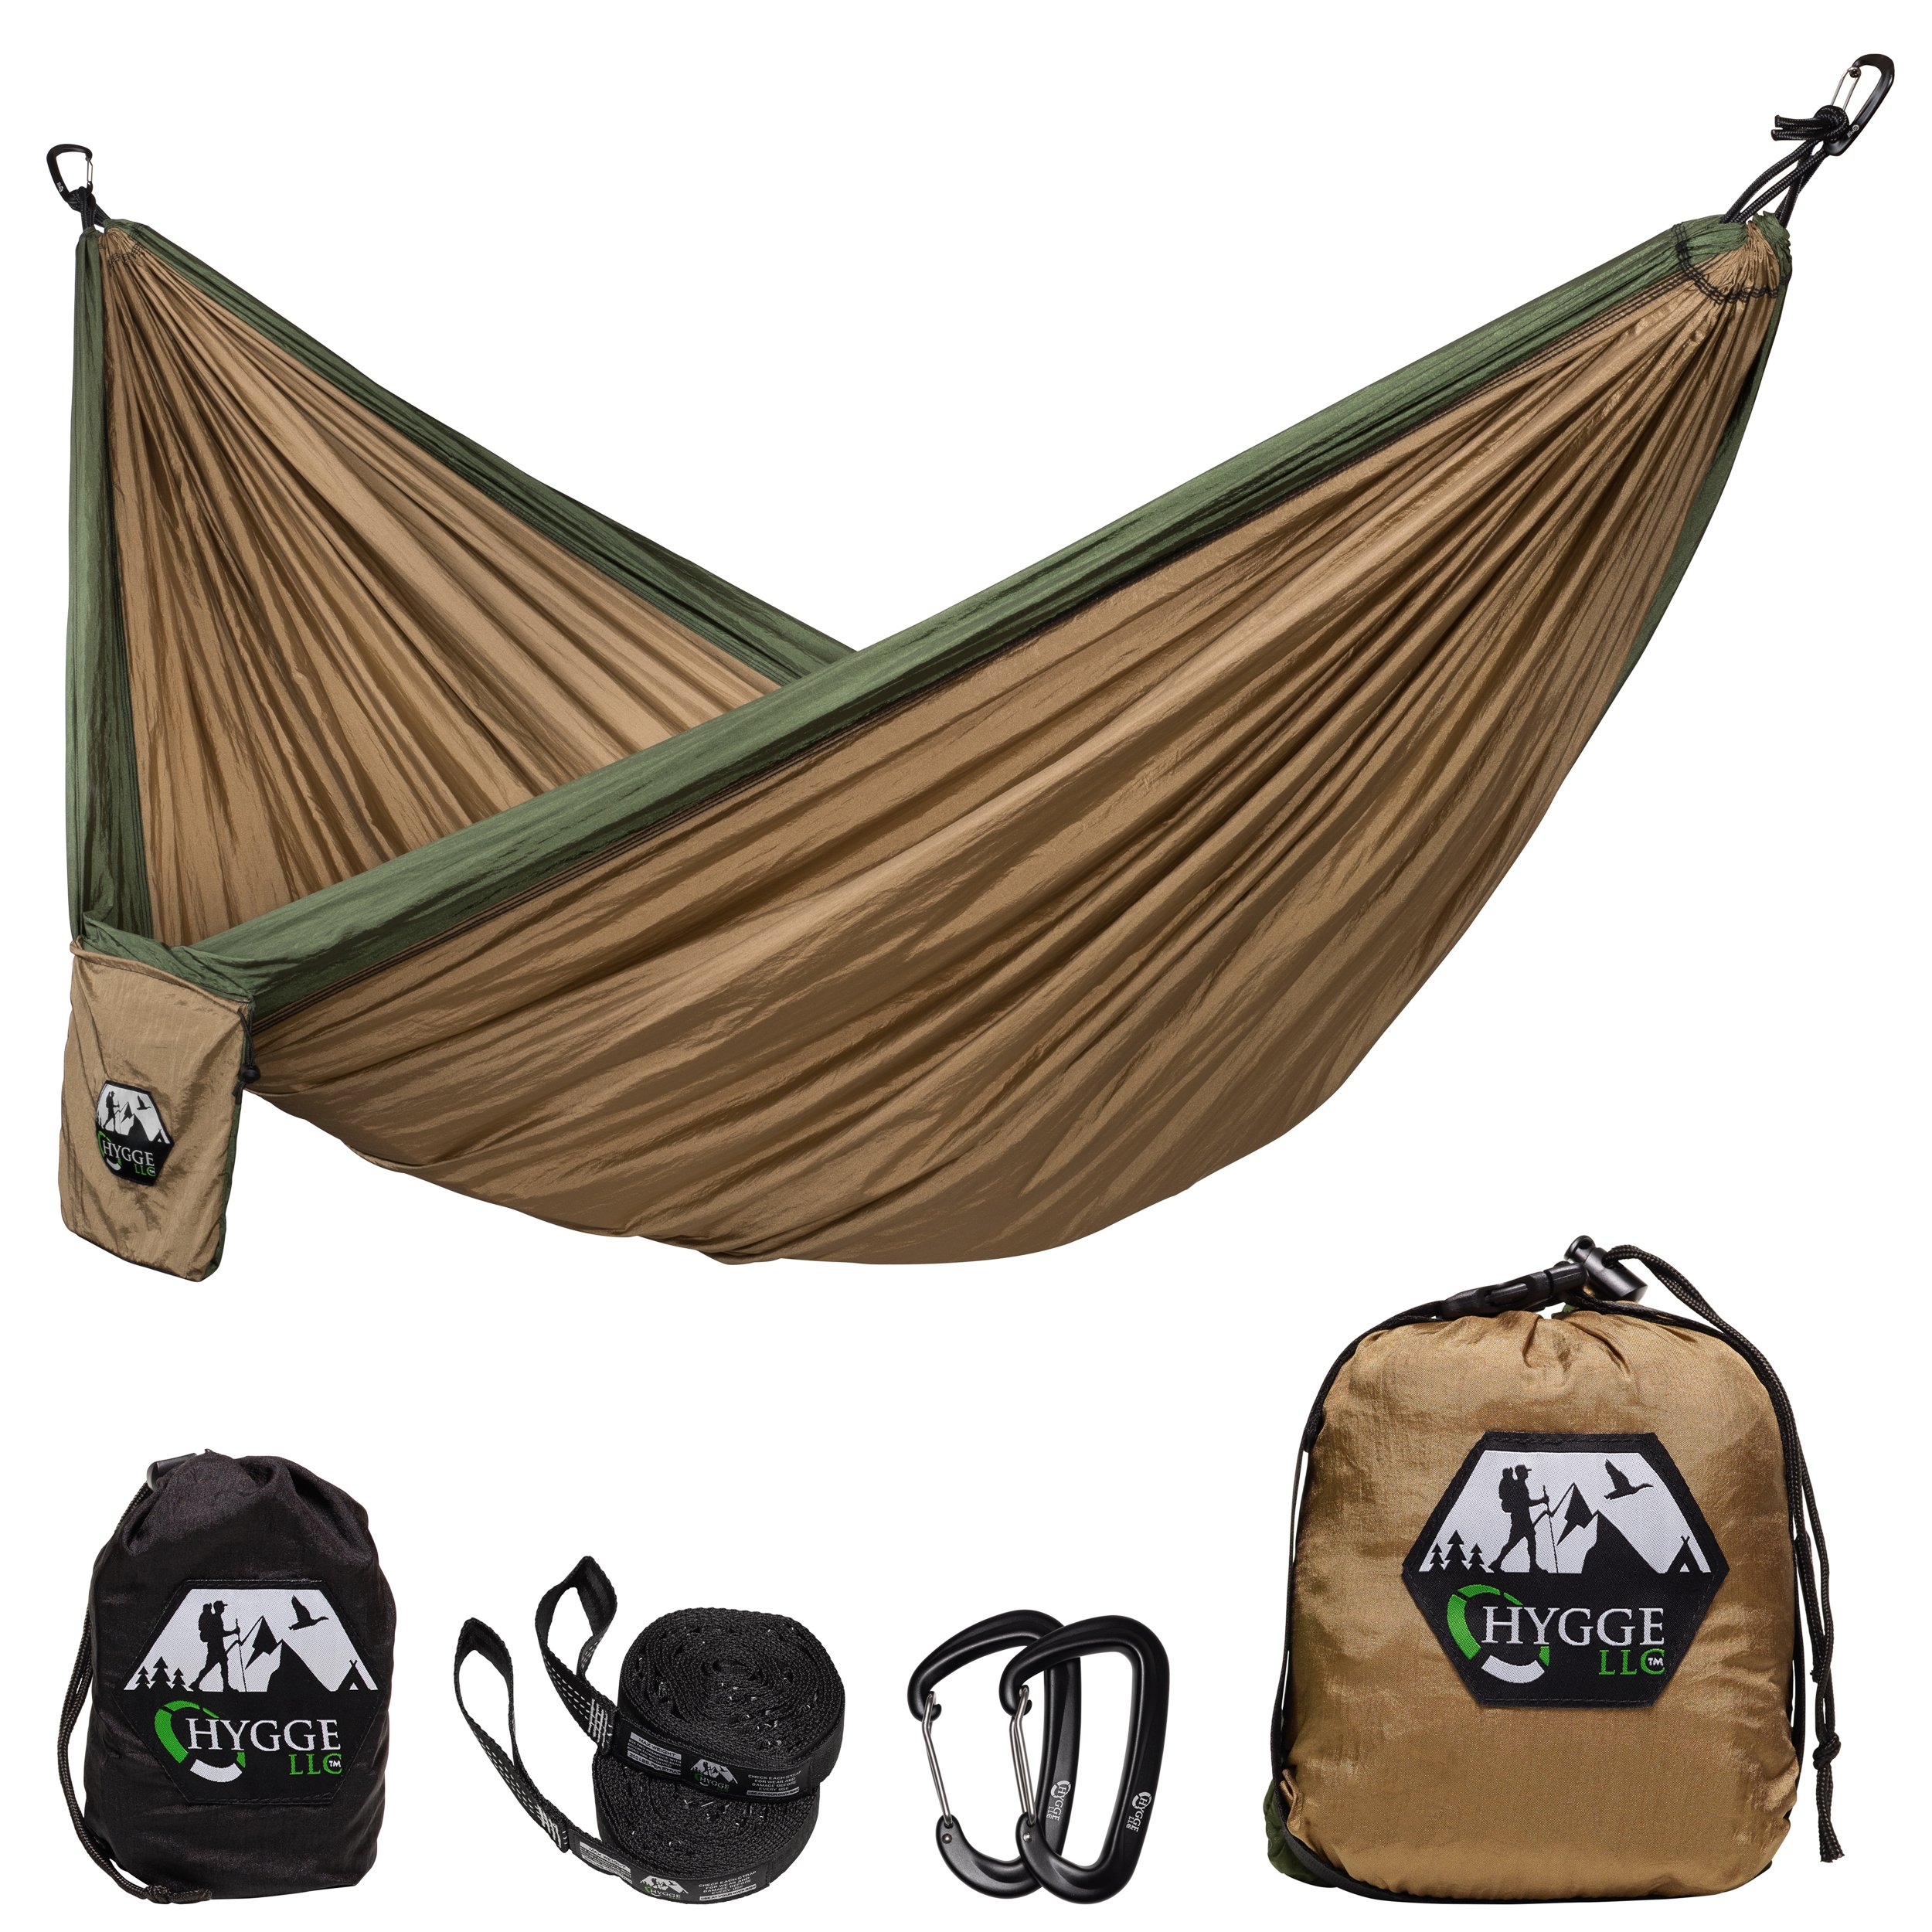 HYGGE Double Hammock Made of Premium Quality 210T Parachute Nylon - Lightweight Kit Includes 7075 Series Aluminum Wire Carabiners, Adjustable Triple Stitched Straps with Carrying Case, Exclusively by HYGGE